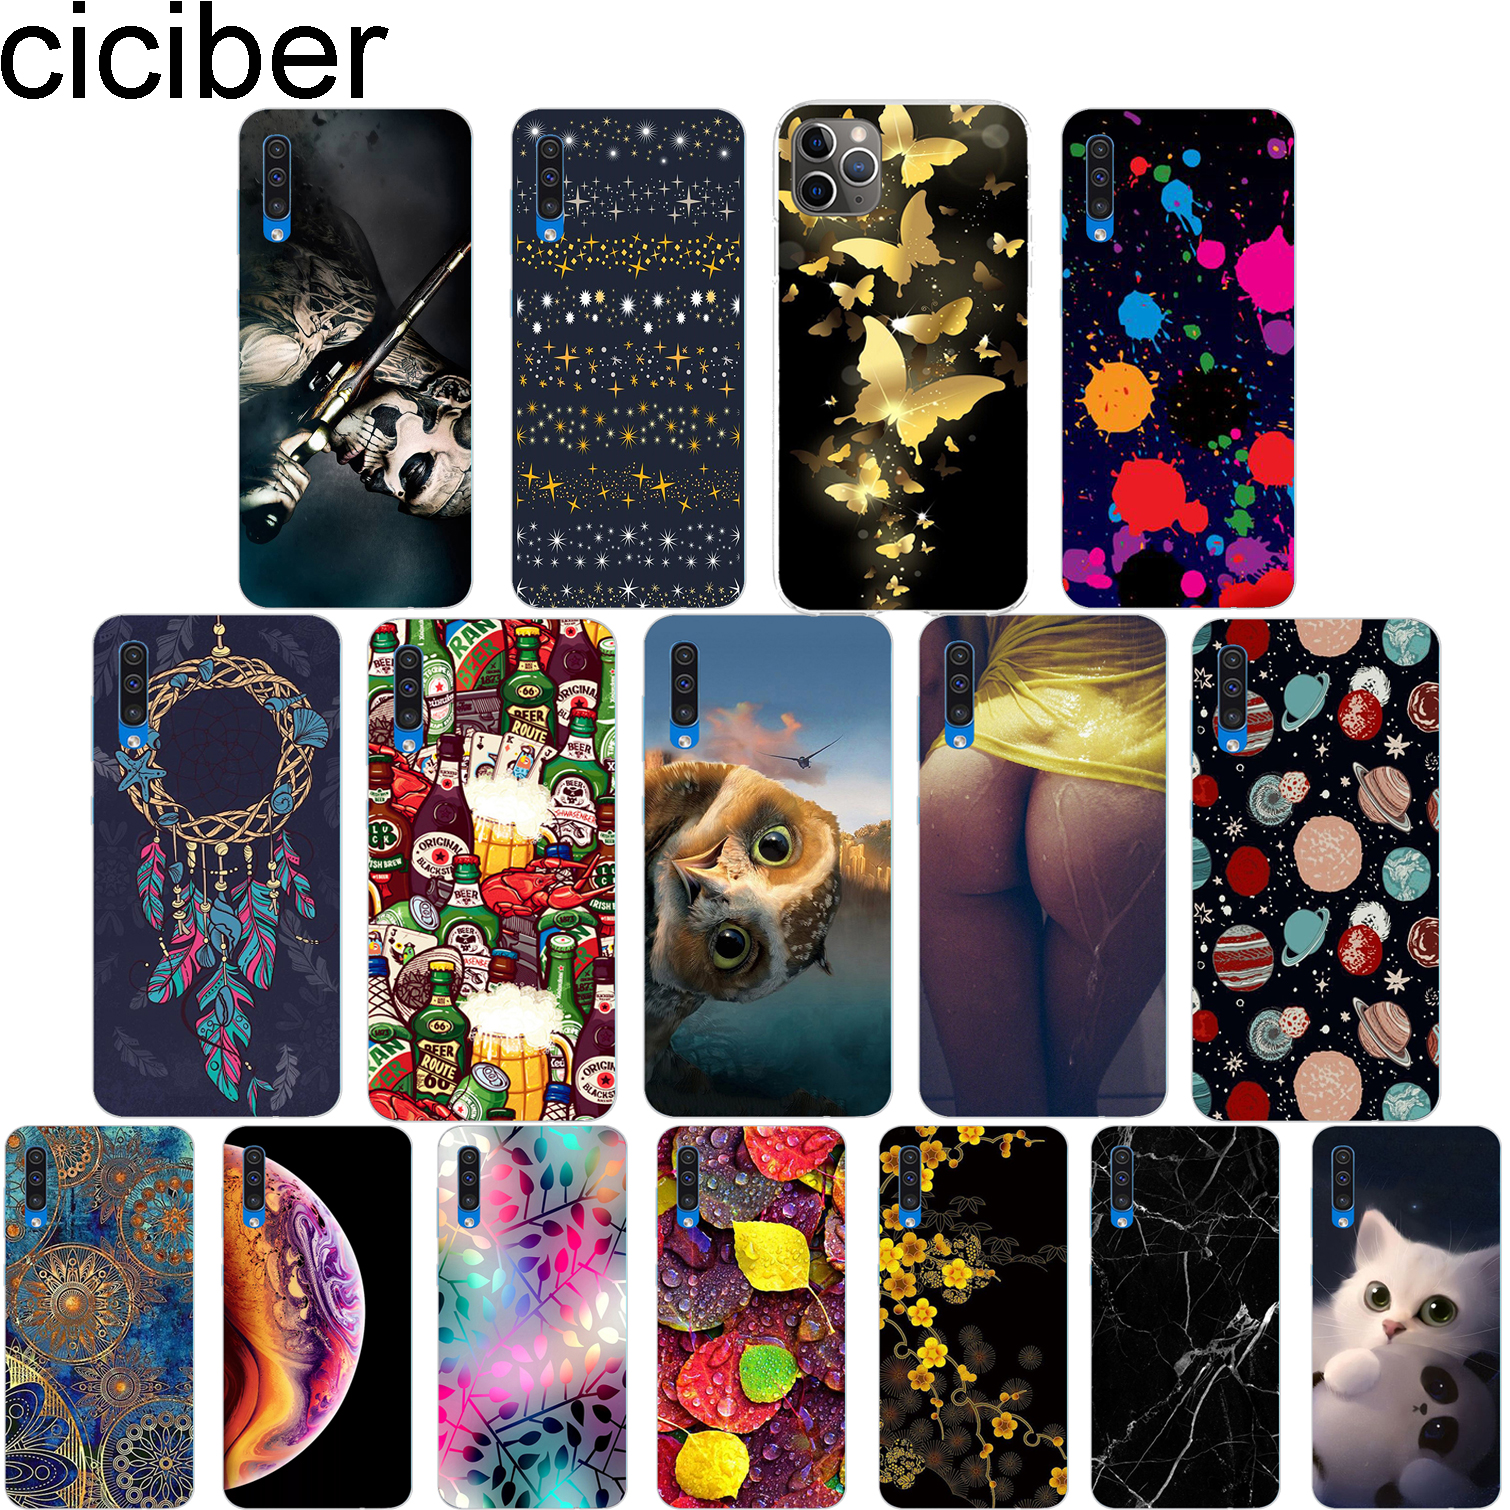 ciciber for <font><b>Samsung</b></font> Galaxy <font><b>A50</b></font> A40 6.4inch 5.9inch Phone Case Soft Silicone TPU Cover Fundas Flower and Animal Coque Capa <font><b>Hoesje</b></font> image